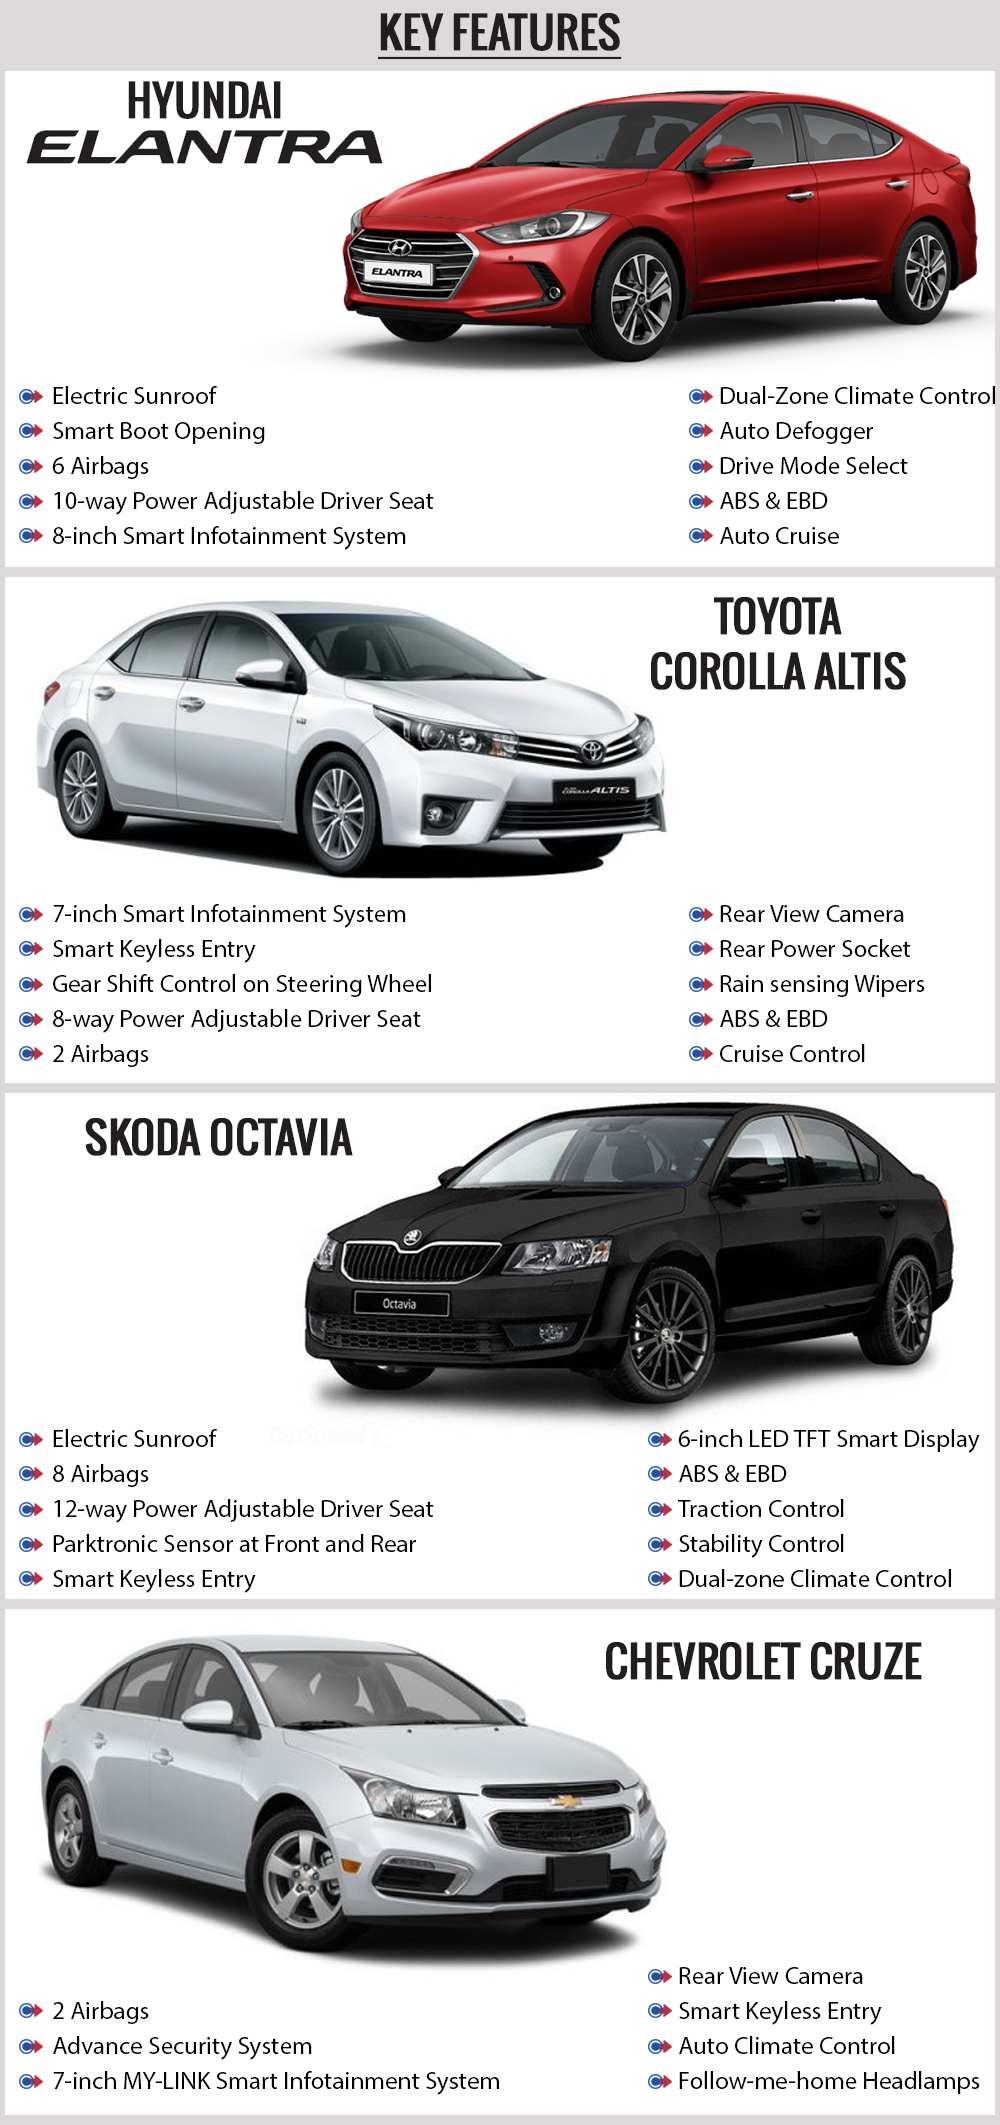 New Hyundai Elantra vs Toyota Corolla Altis vs Skoda Octavia vs Chevrolet Cruze Key Features